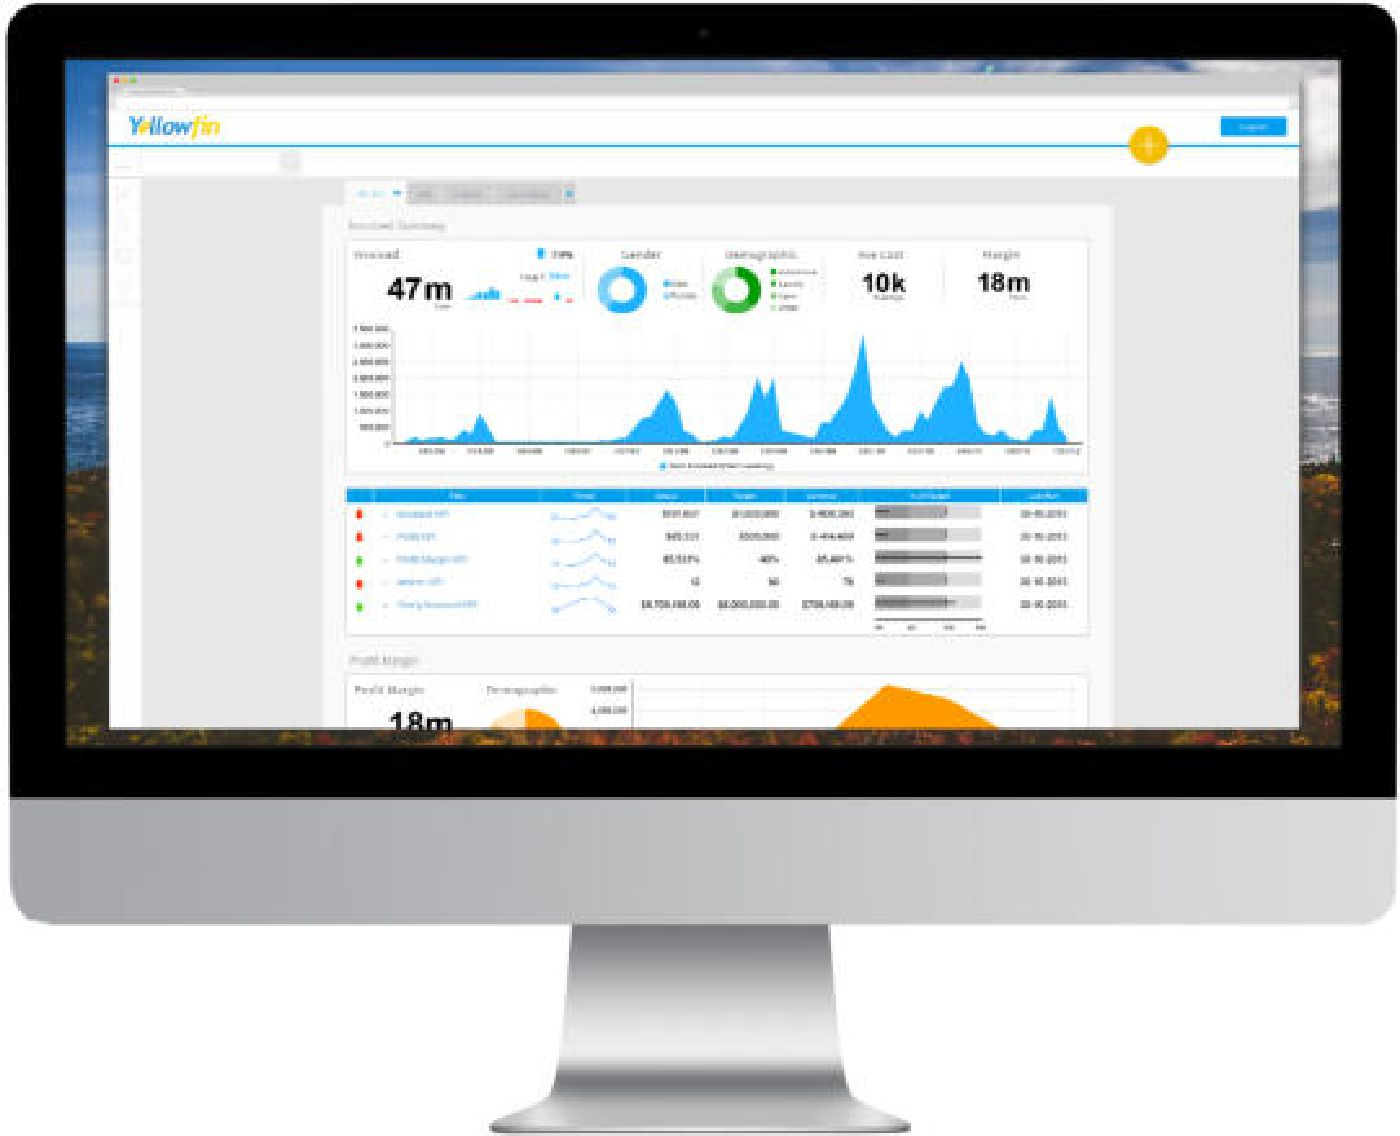 Yellowfin BI Dashboard